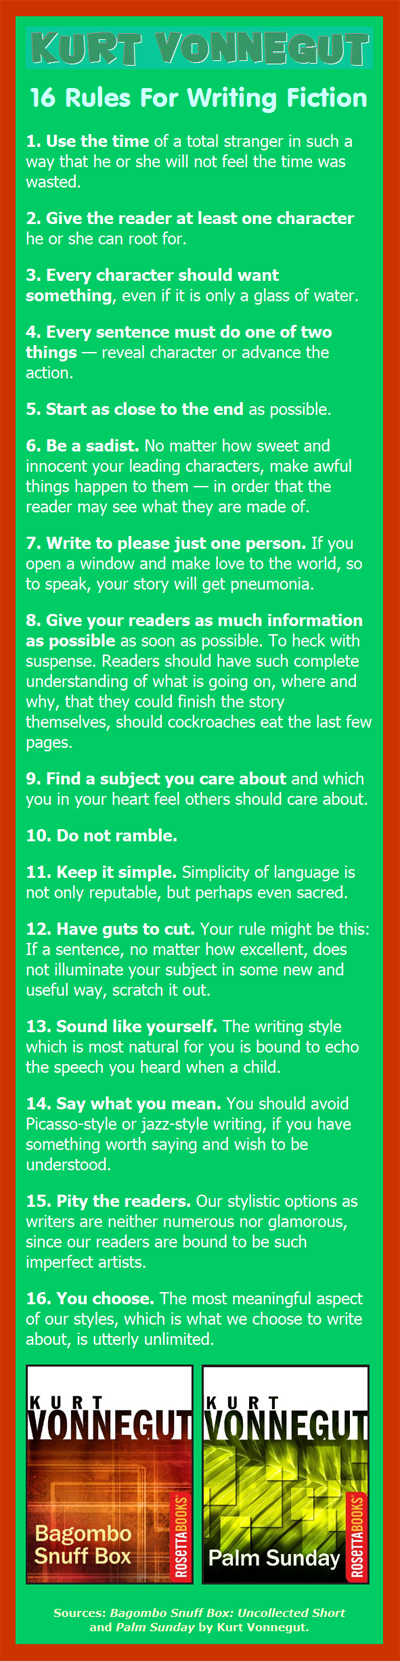 16 Rules For Writing Fiction by Kurt Vonnegut. Here are some great rules for writers, novelists, and short story writers from one of the top novelists ever to write a book.